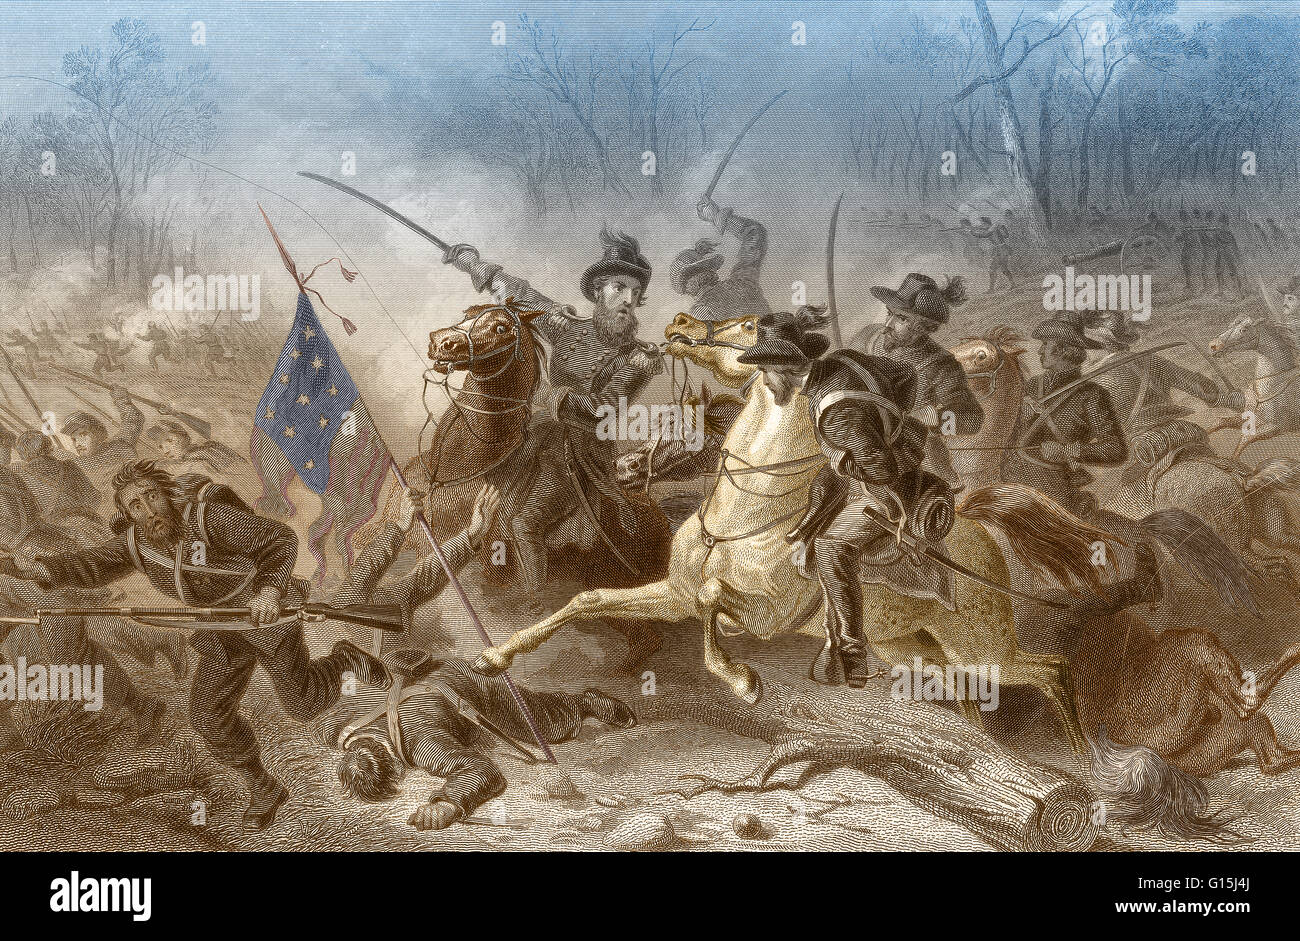 Color enhanced illustration of the Battle of Shiloh, also known as the Battle of Pittsburg Landing, a major battle - Stock Image